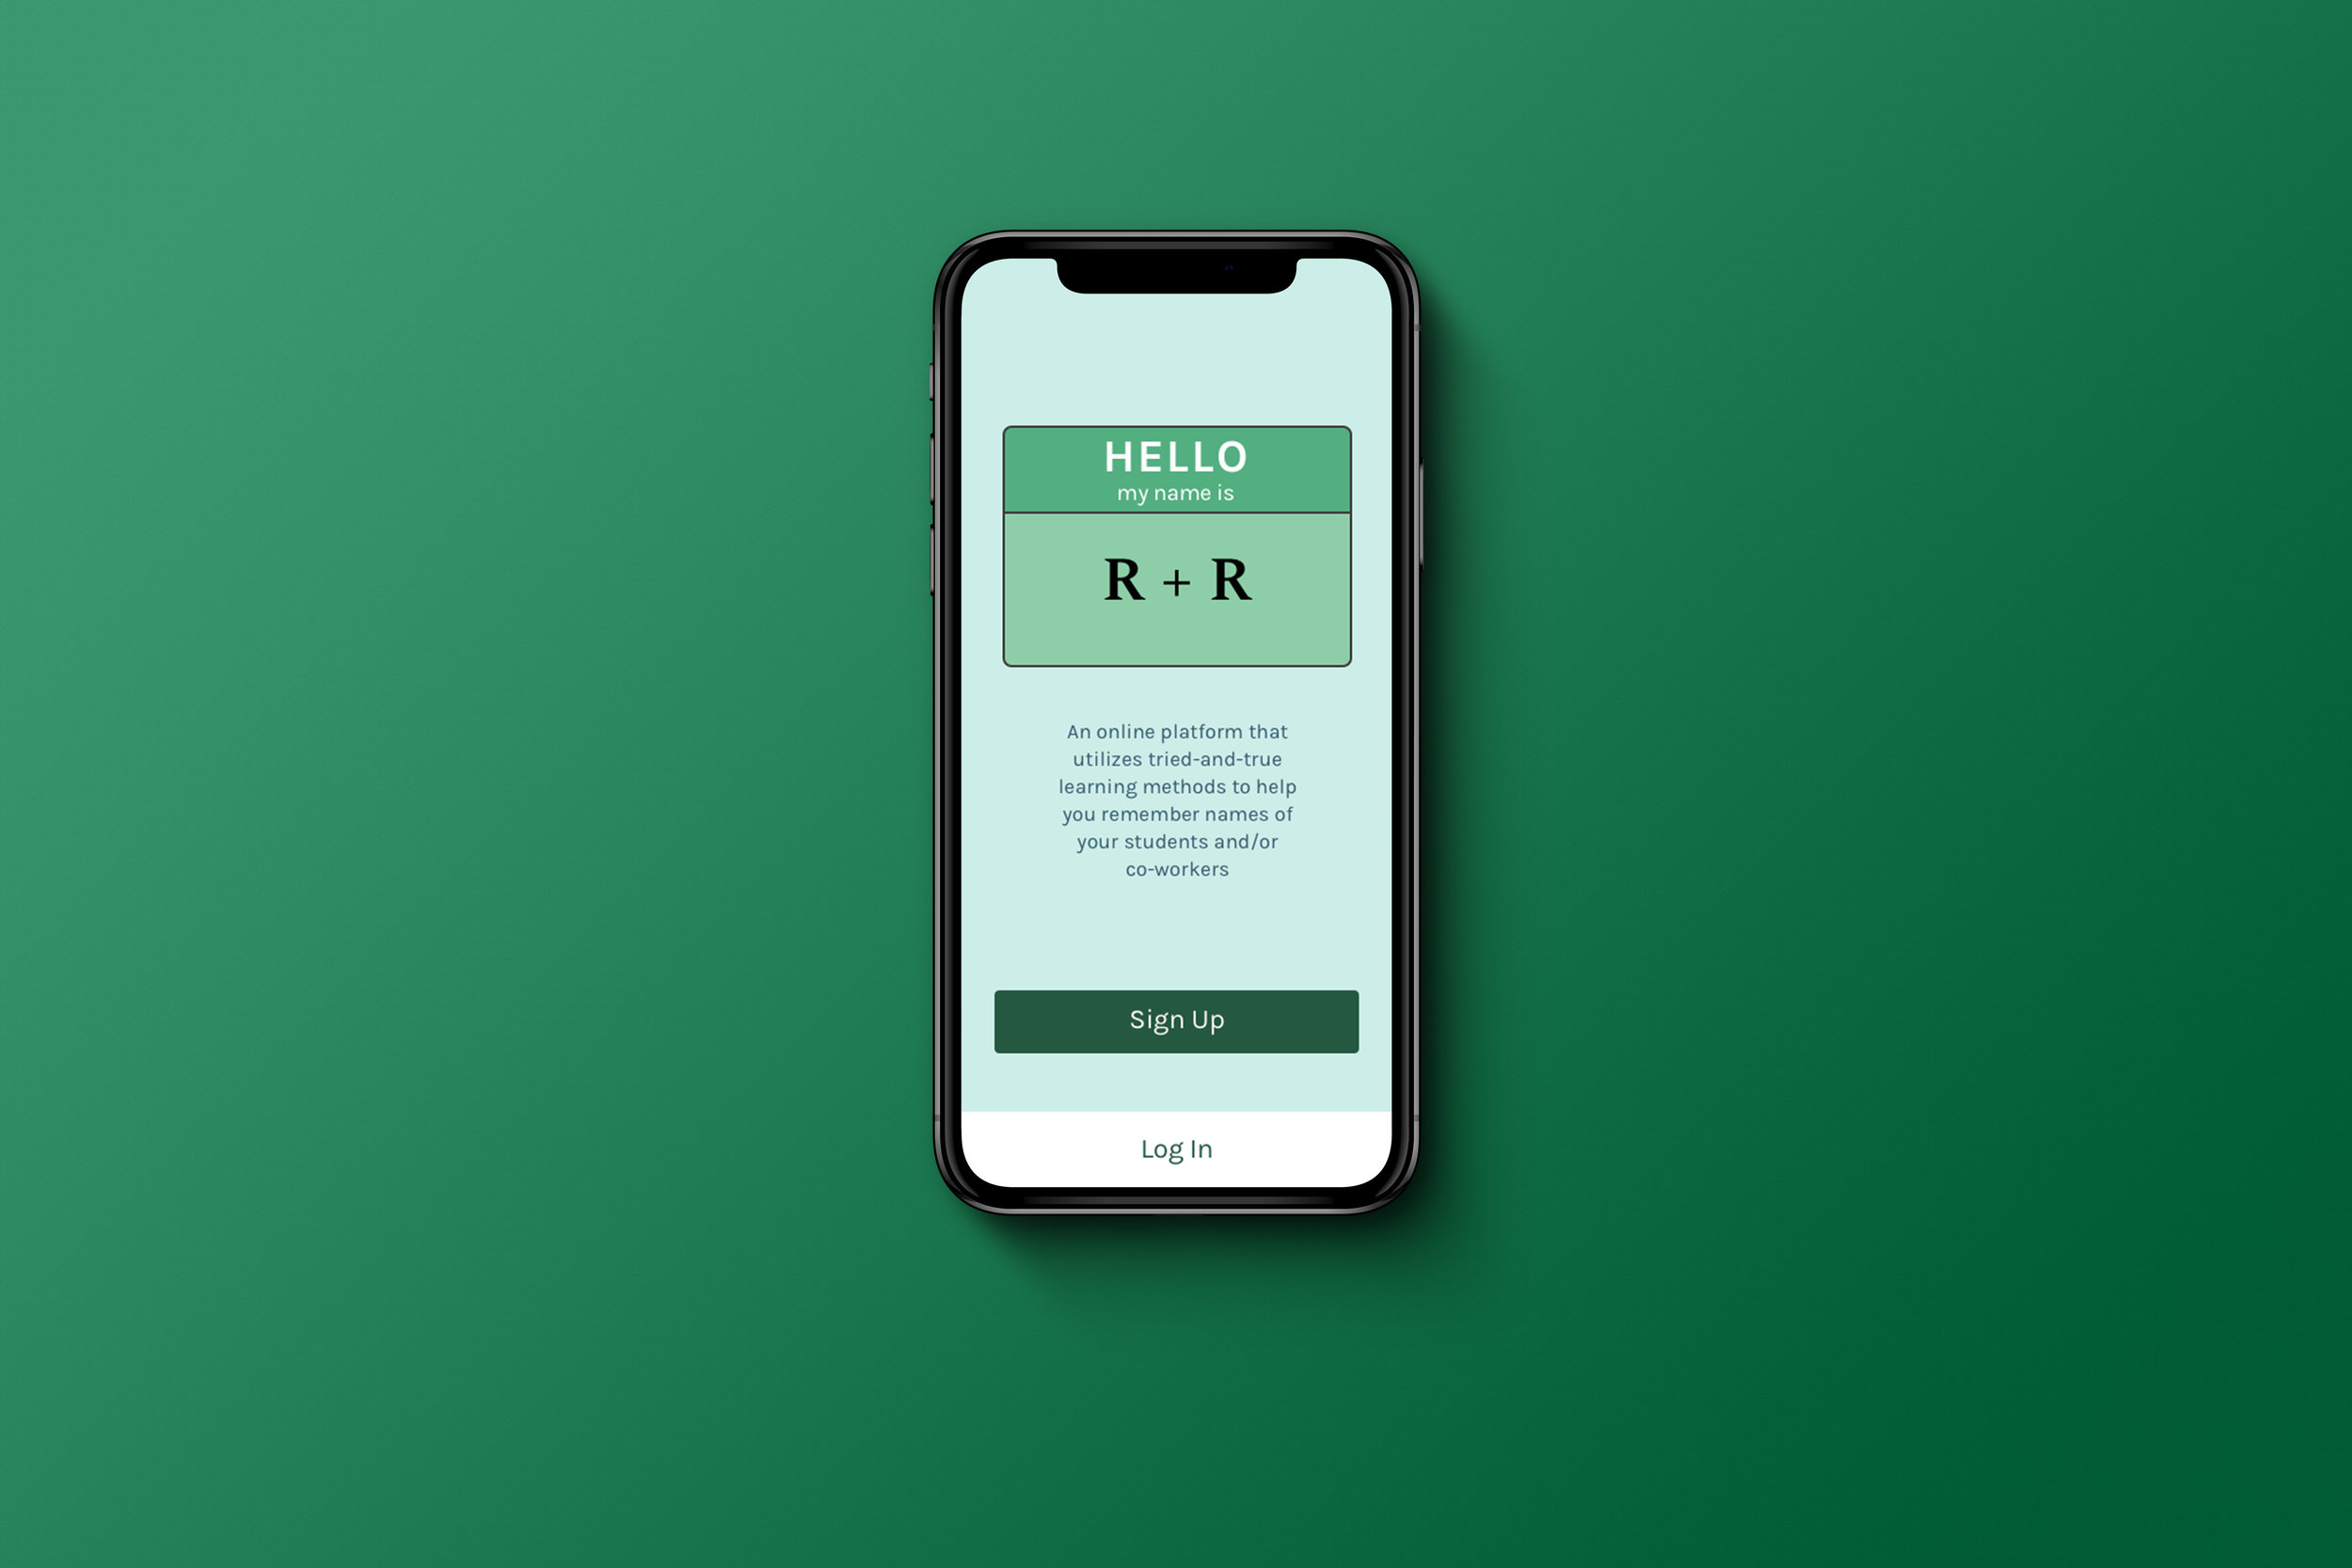 R + R Name Learning App